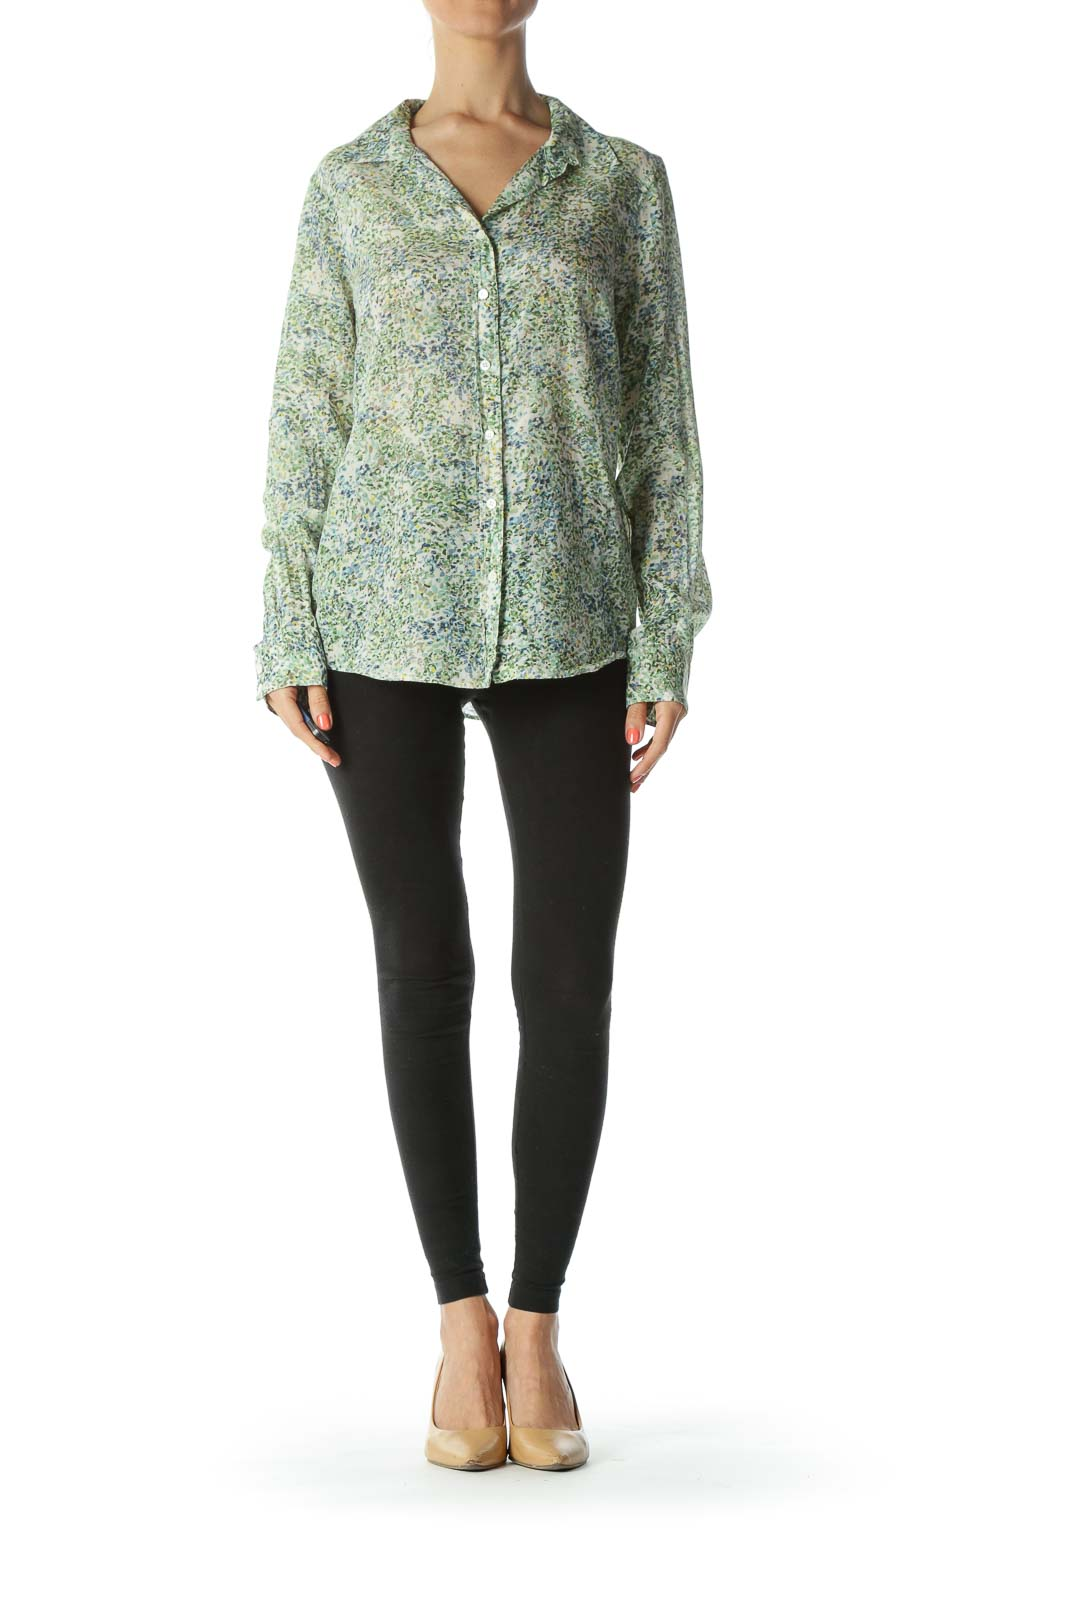 Blue/Green/Yellow Floral-Print Buttoned Long-Sleeve Shirt